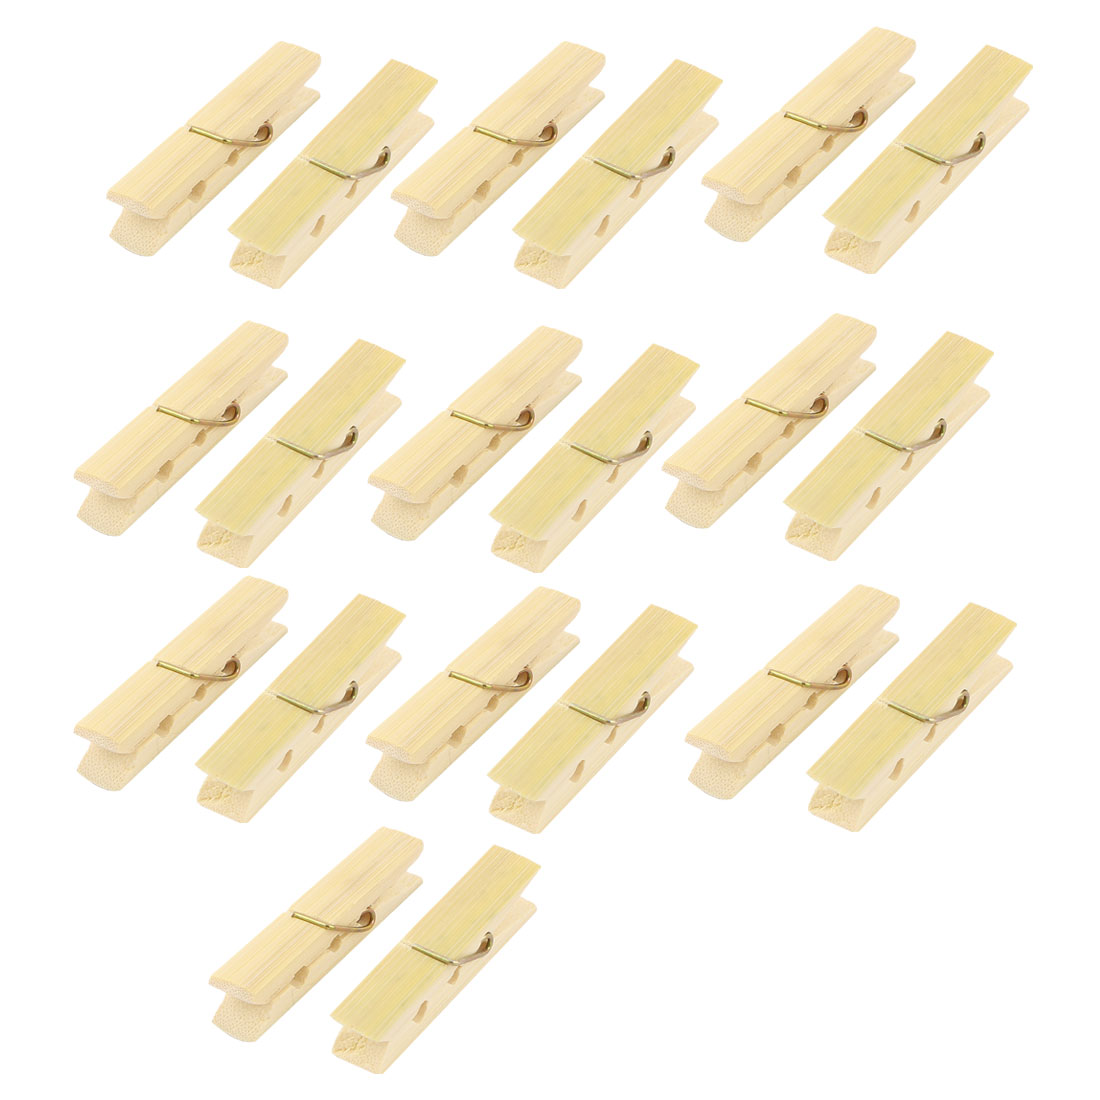 Laundry Spring Socks Clothes Hanging Pins Bamboo Pegs Clothespin Beige 20pcs